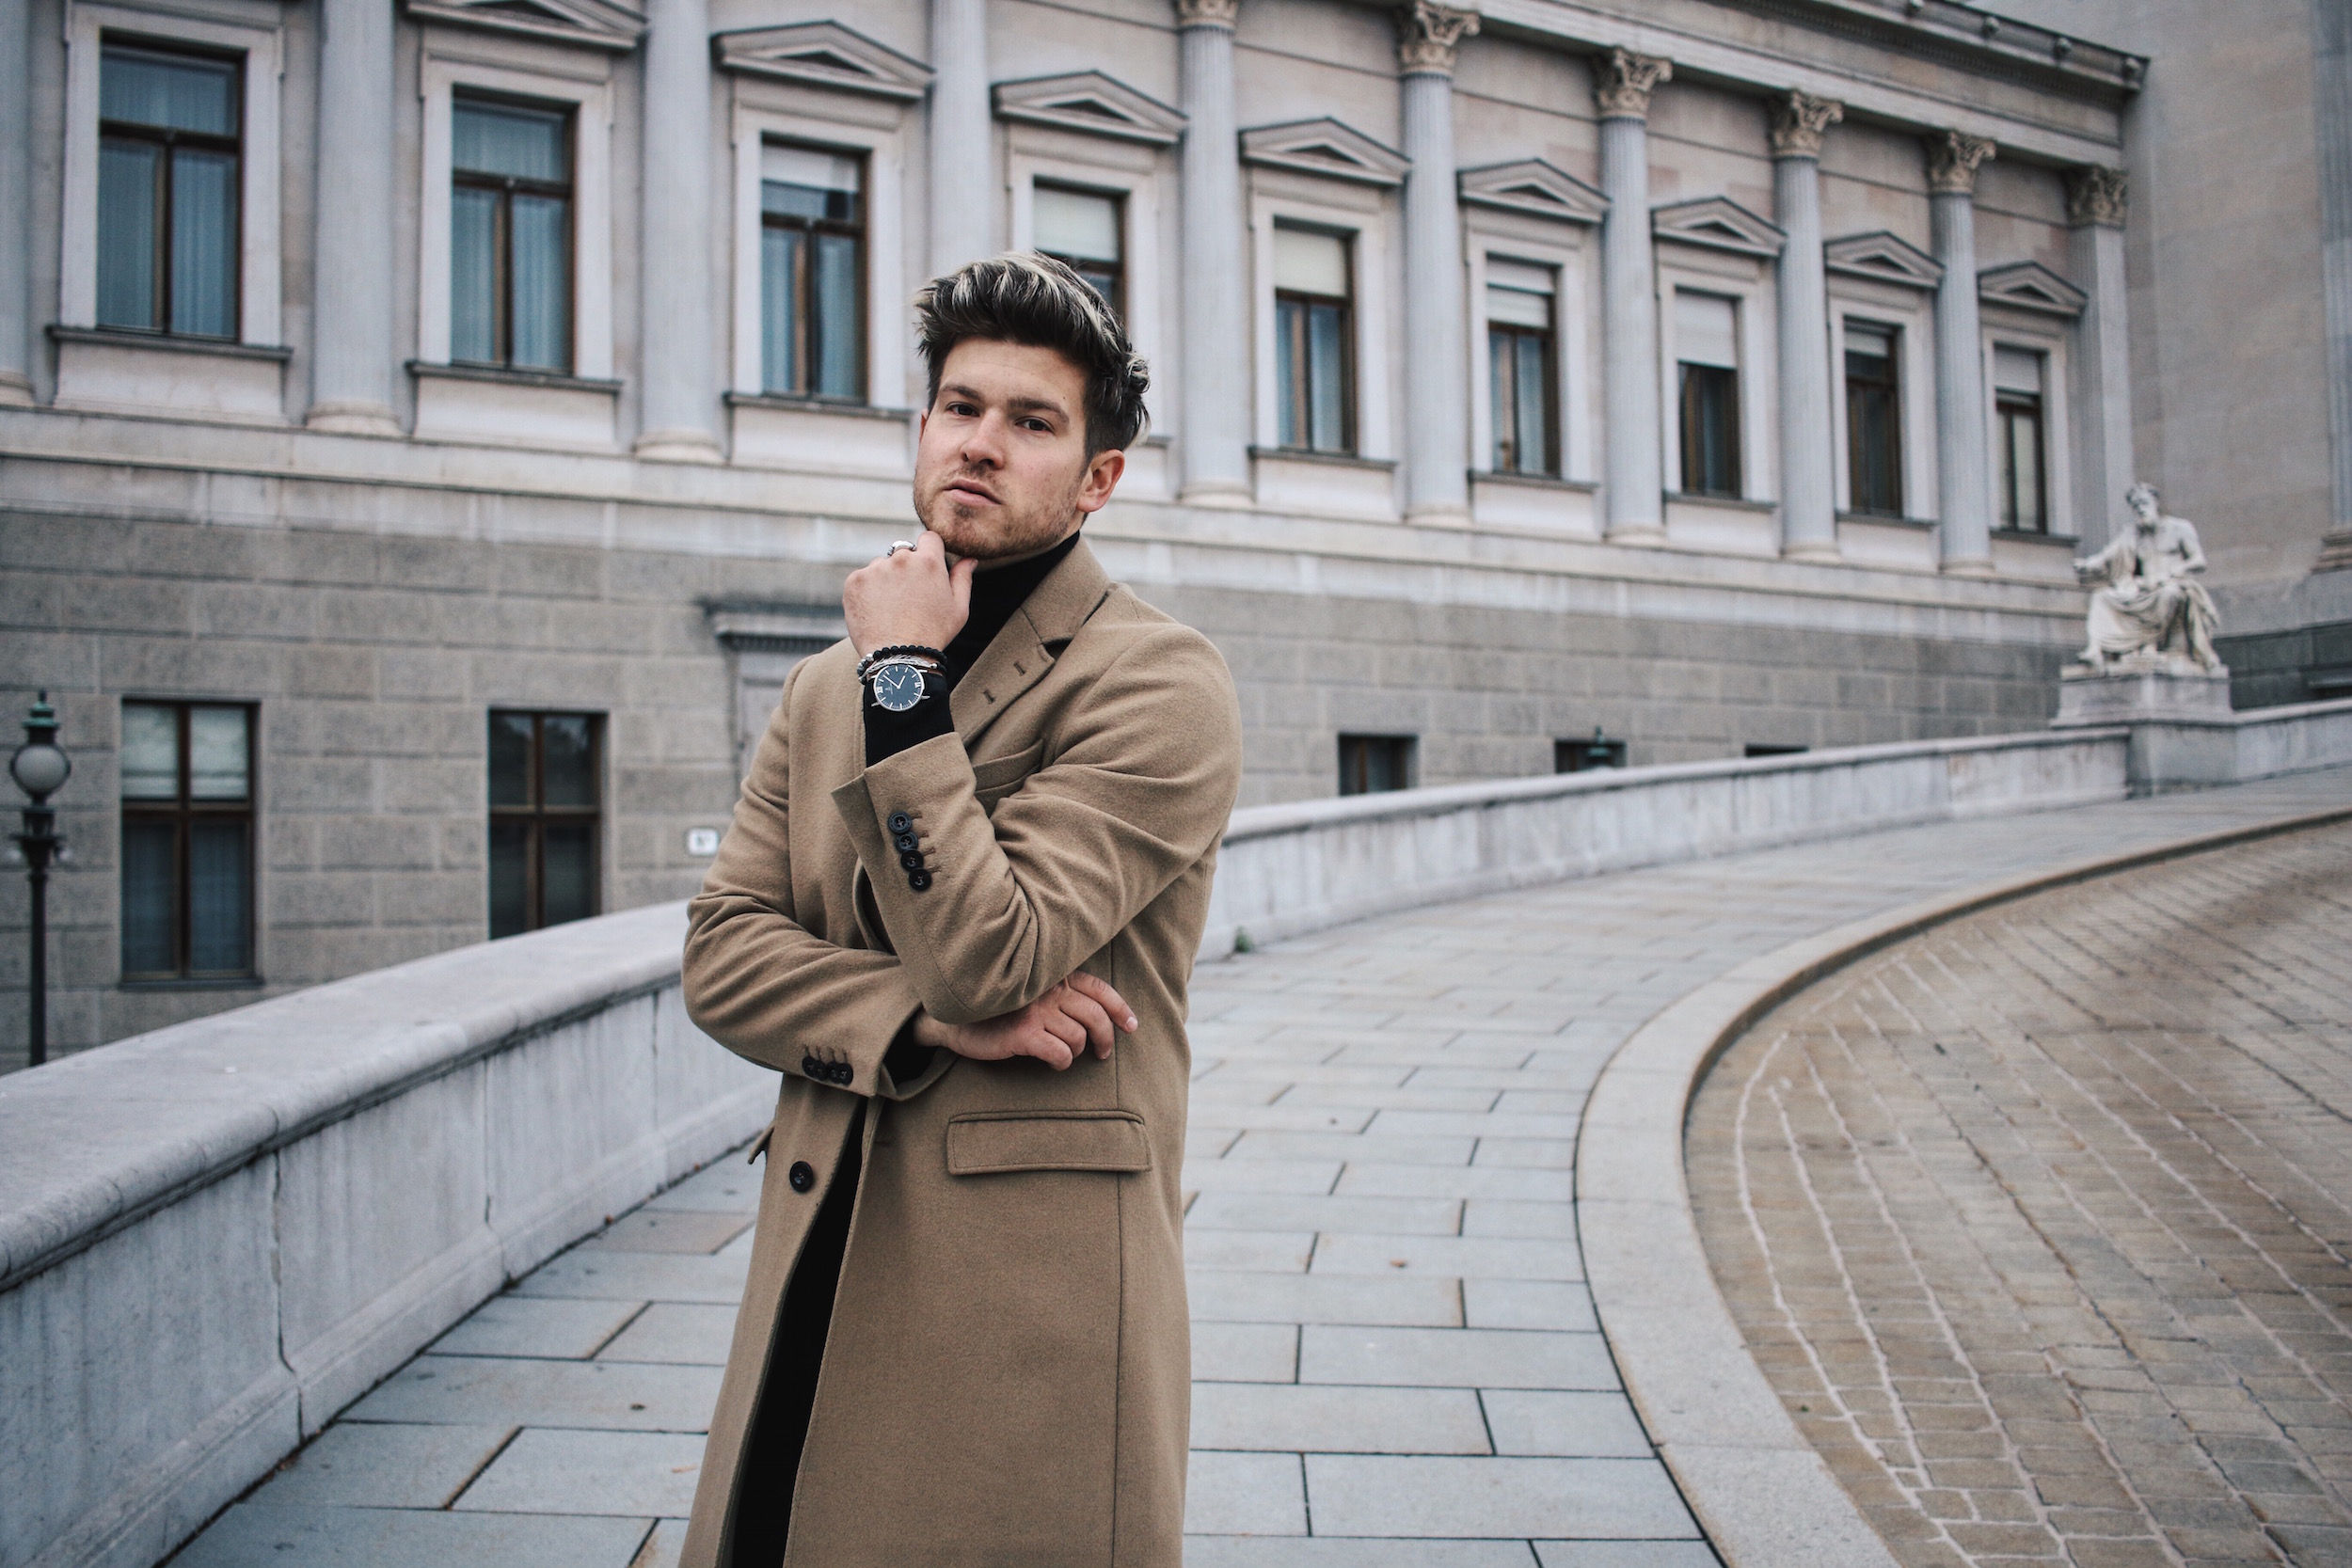 Tiger of Sweden Camel Coat_Turtleneck Sweater_All Black_VOR Shoes_Outfit by Meanwhile in Awesometown_Austrian Mens Fashion and Lifestyle Blogger 12